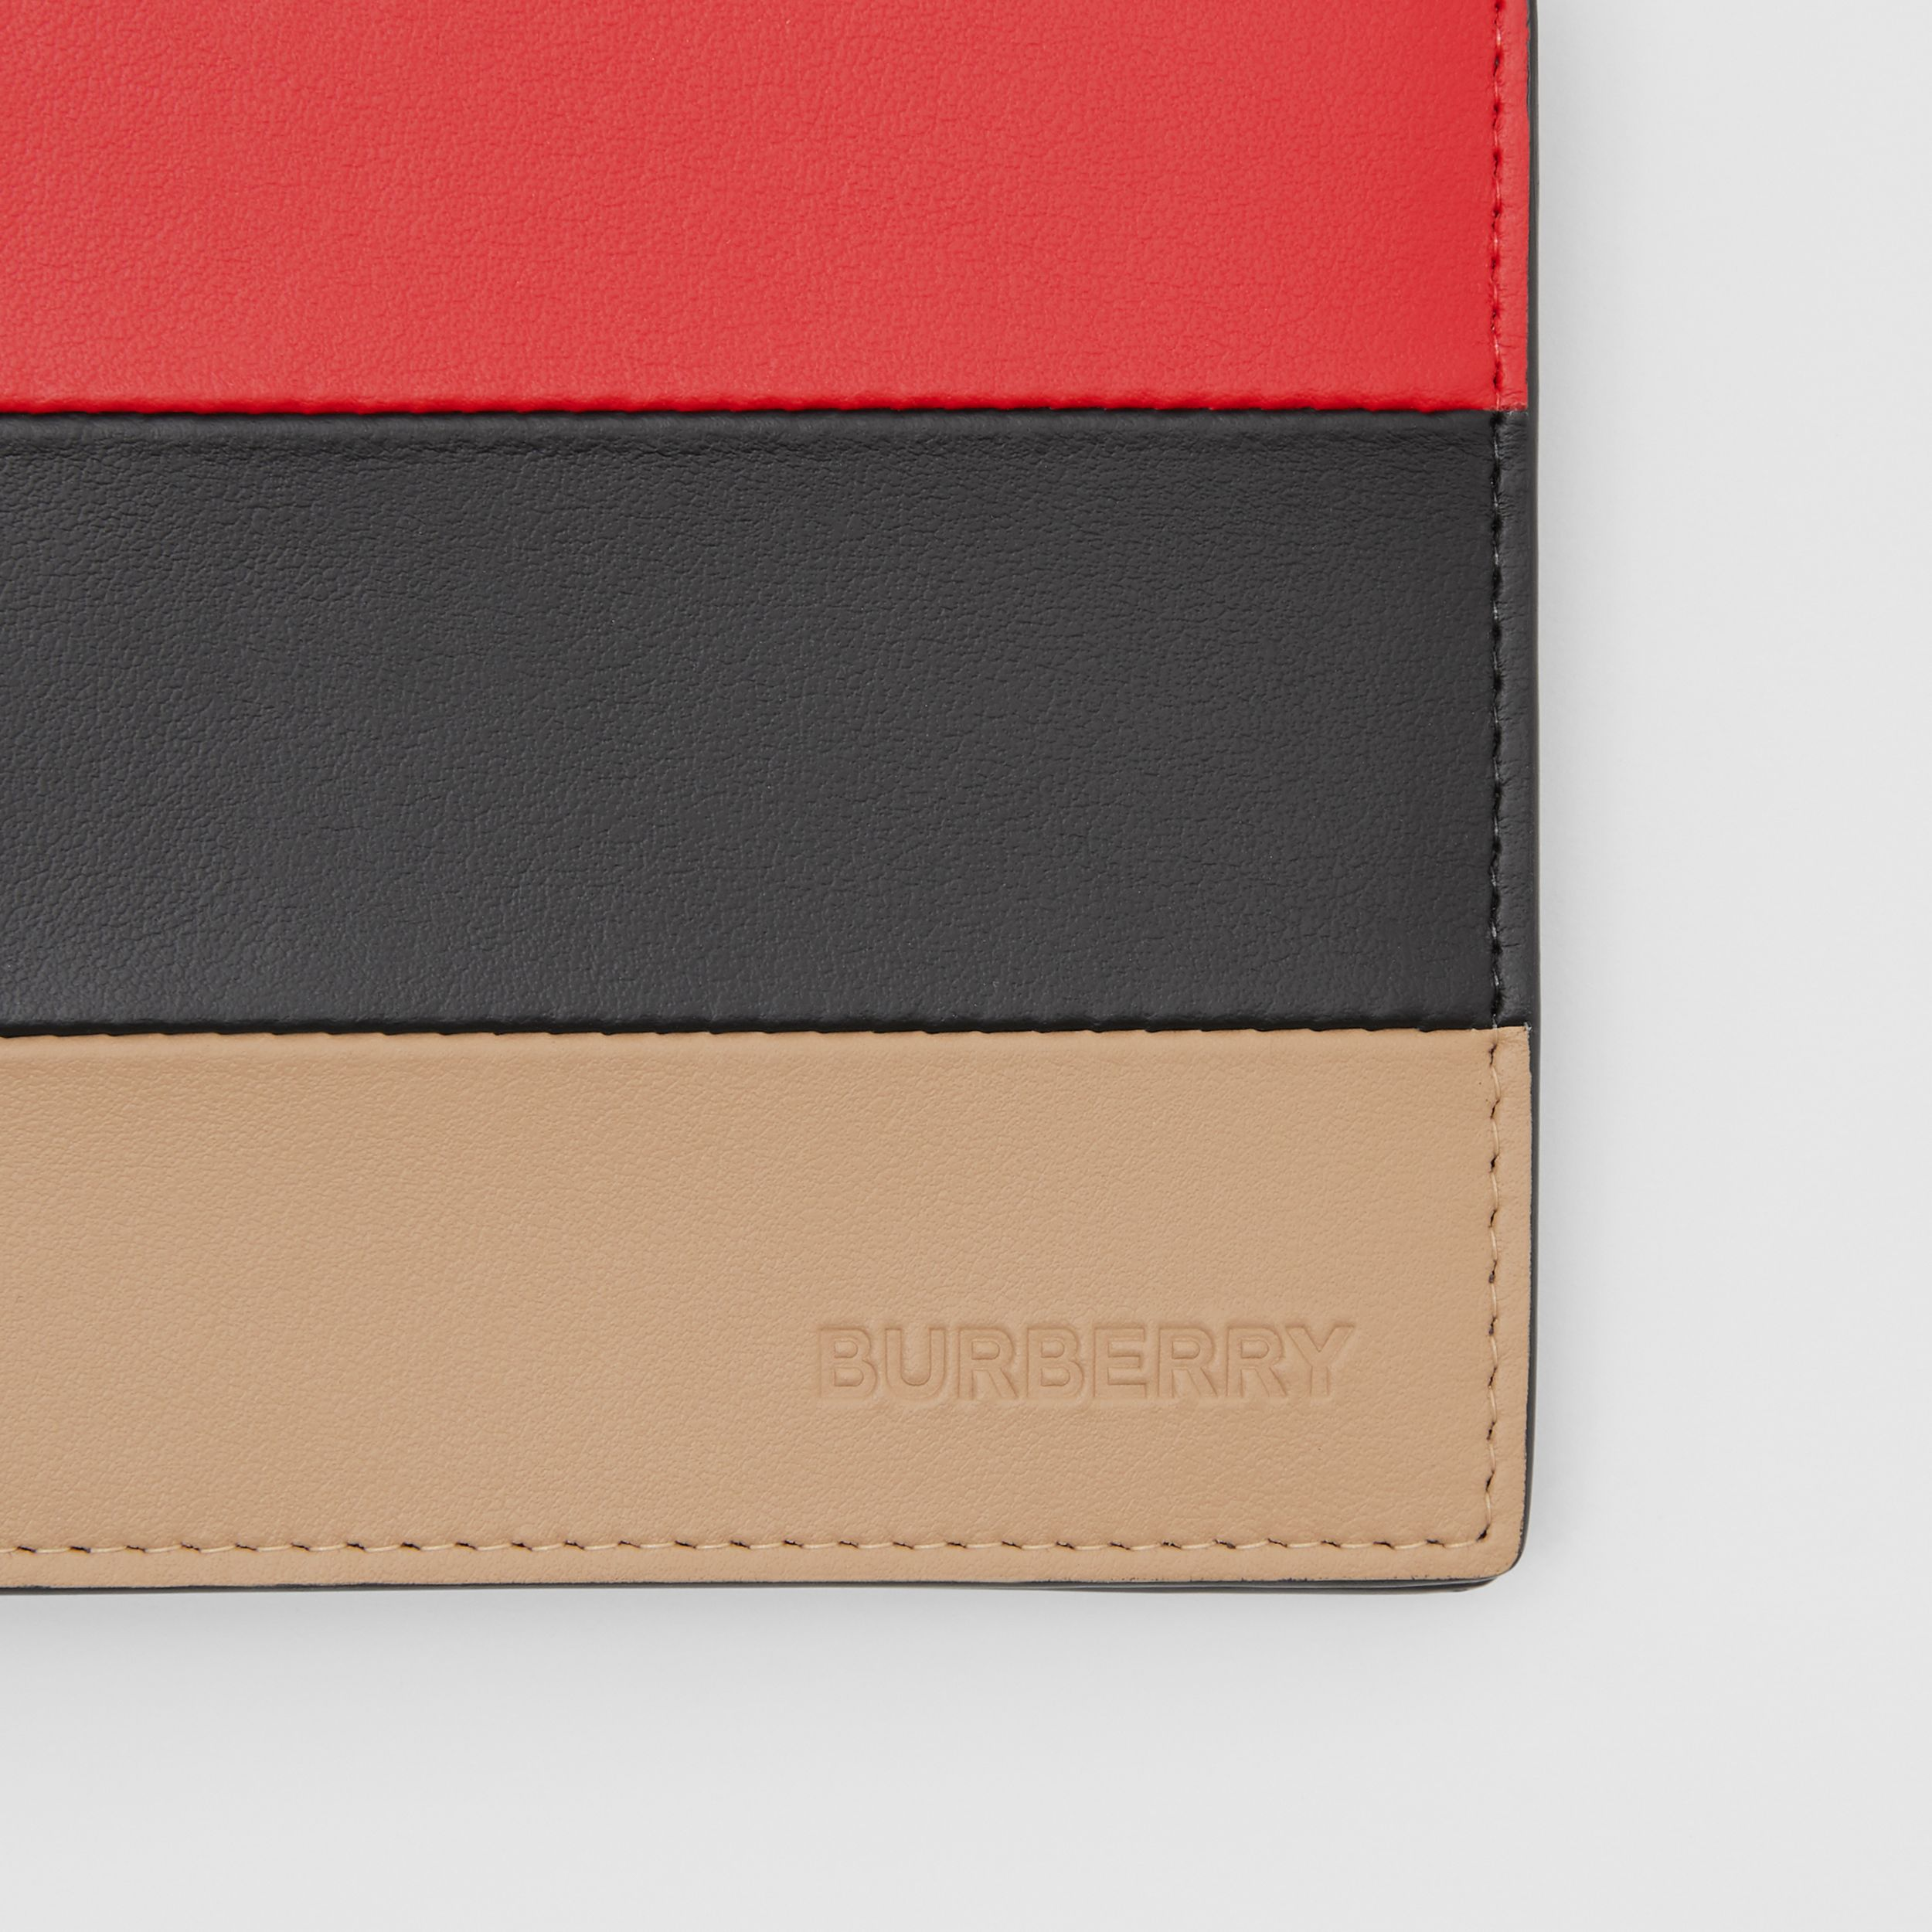 Colour Block Leather International Bifold Wallet in Red/black/beige - Men | Burberry United States - 2